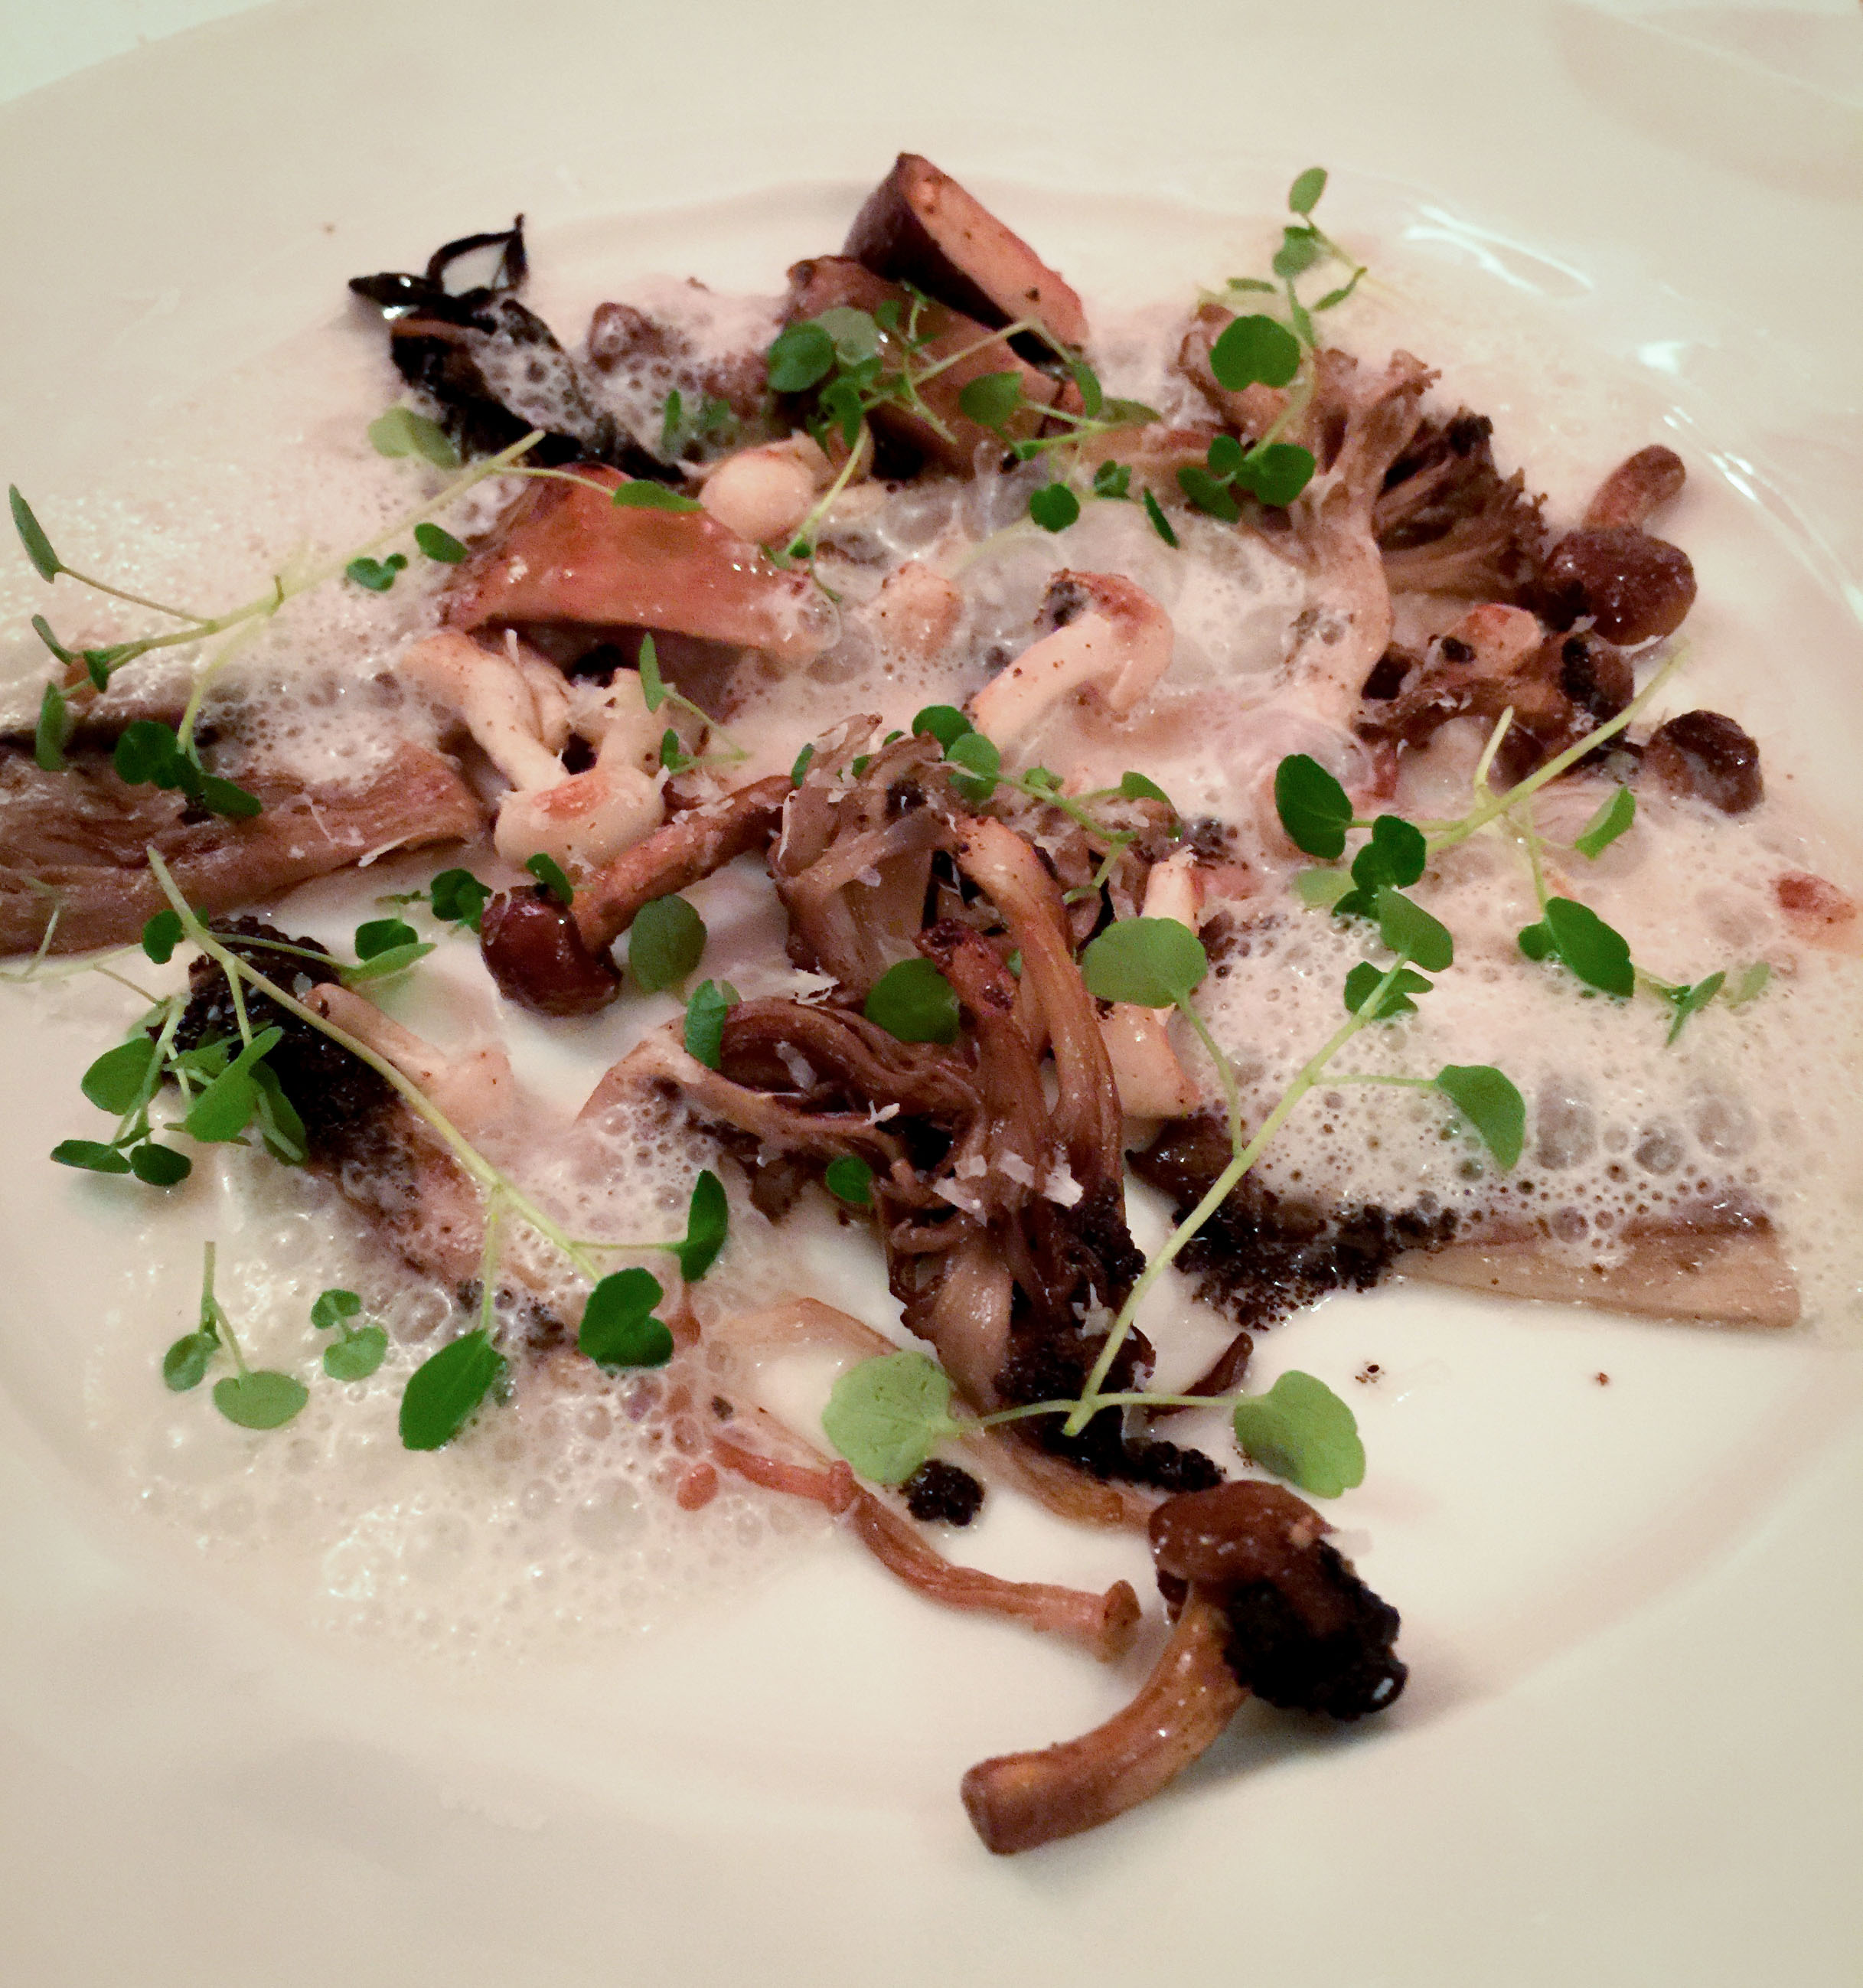 Wild mushrooms with grilled toro